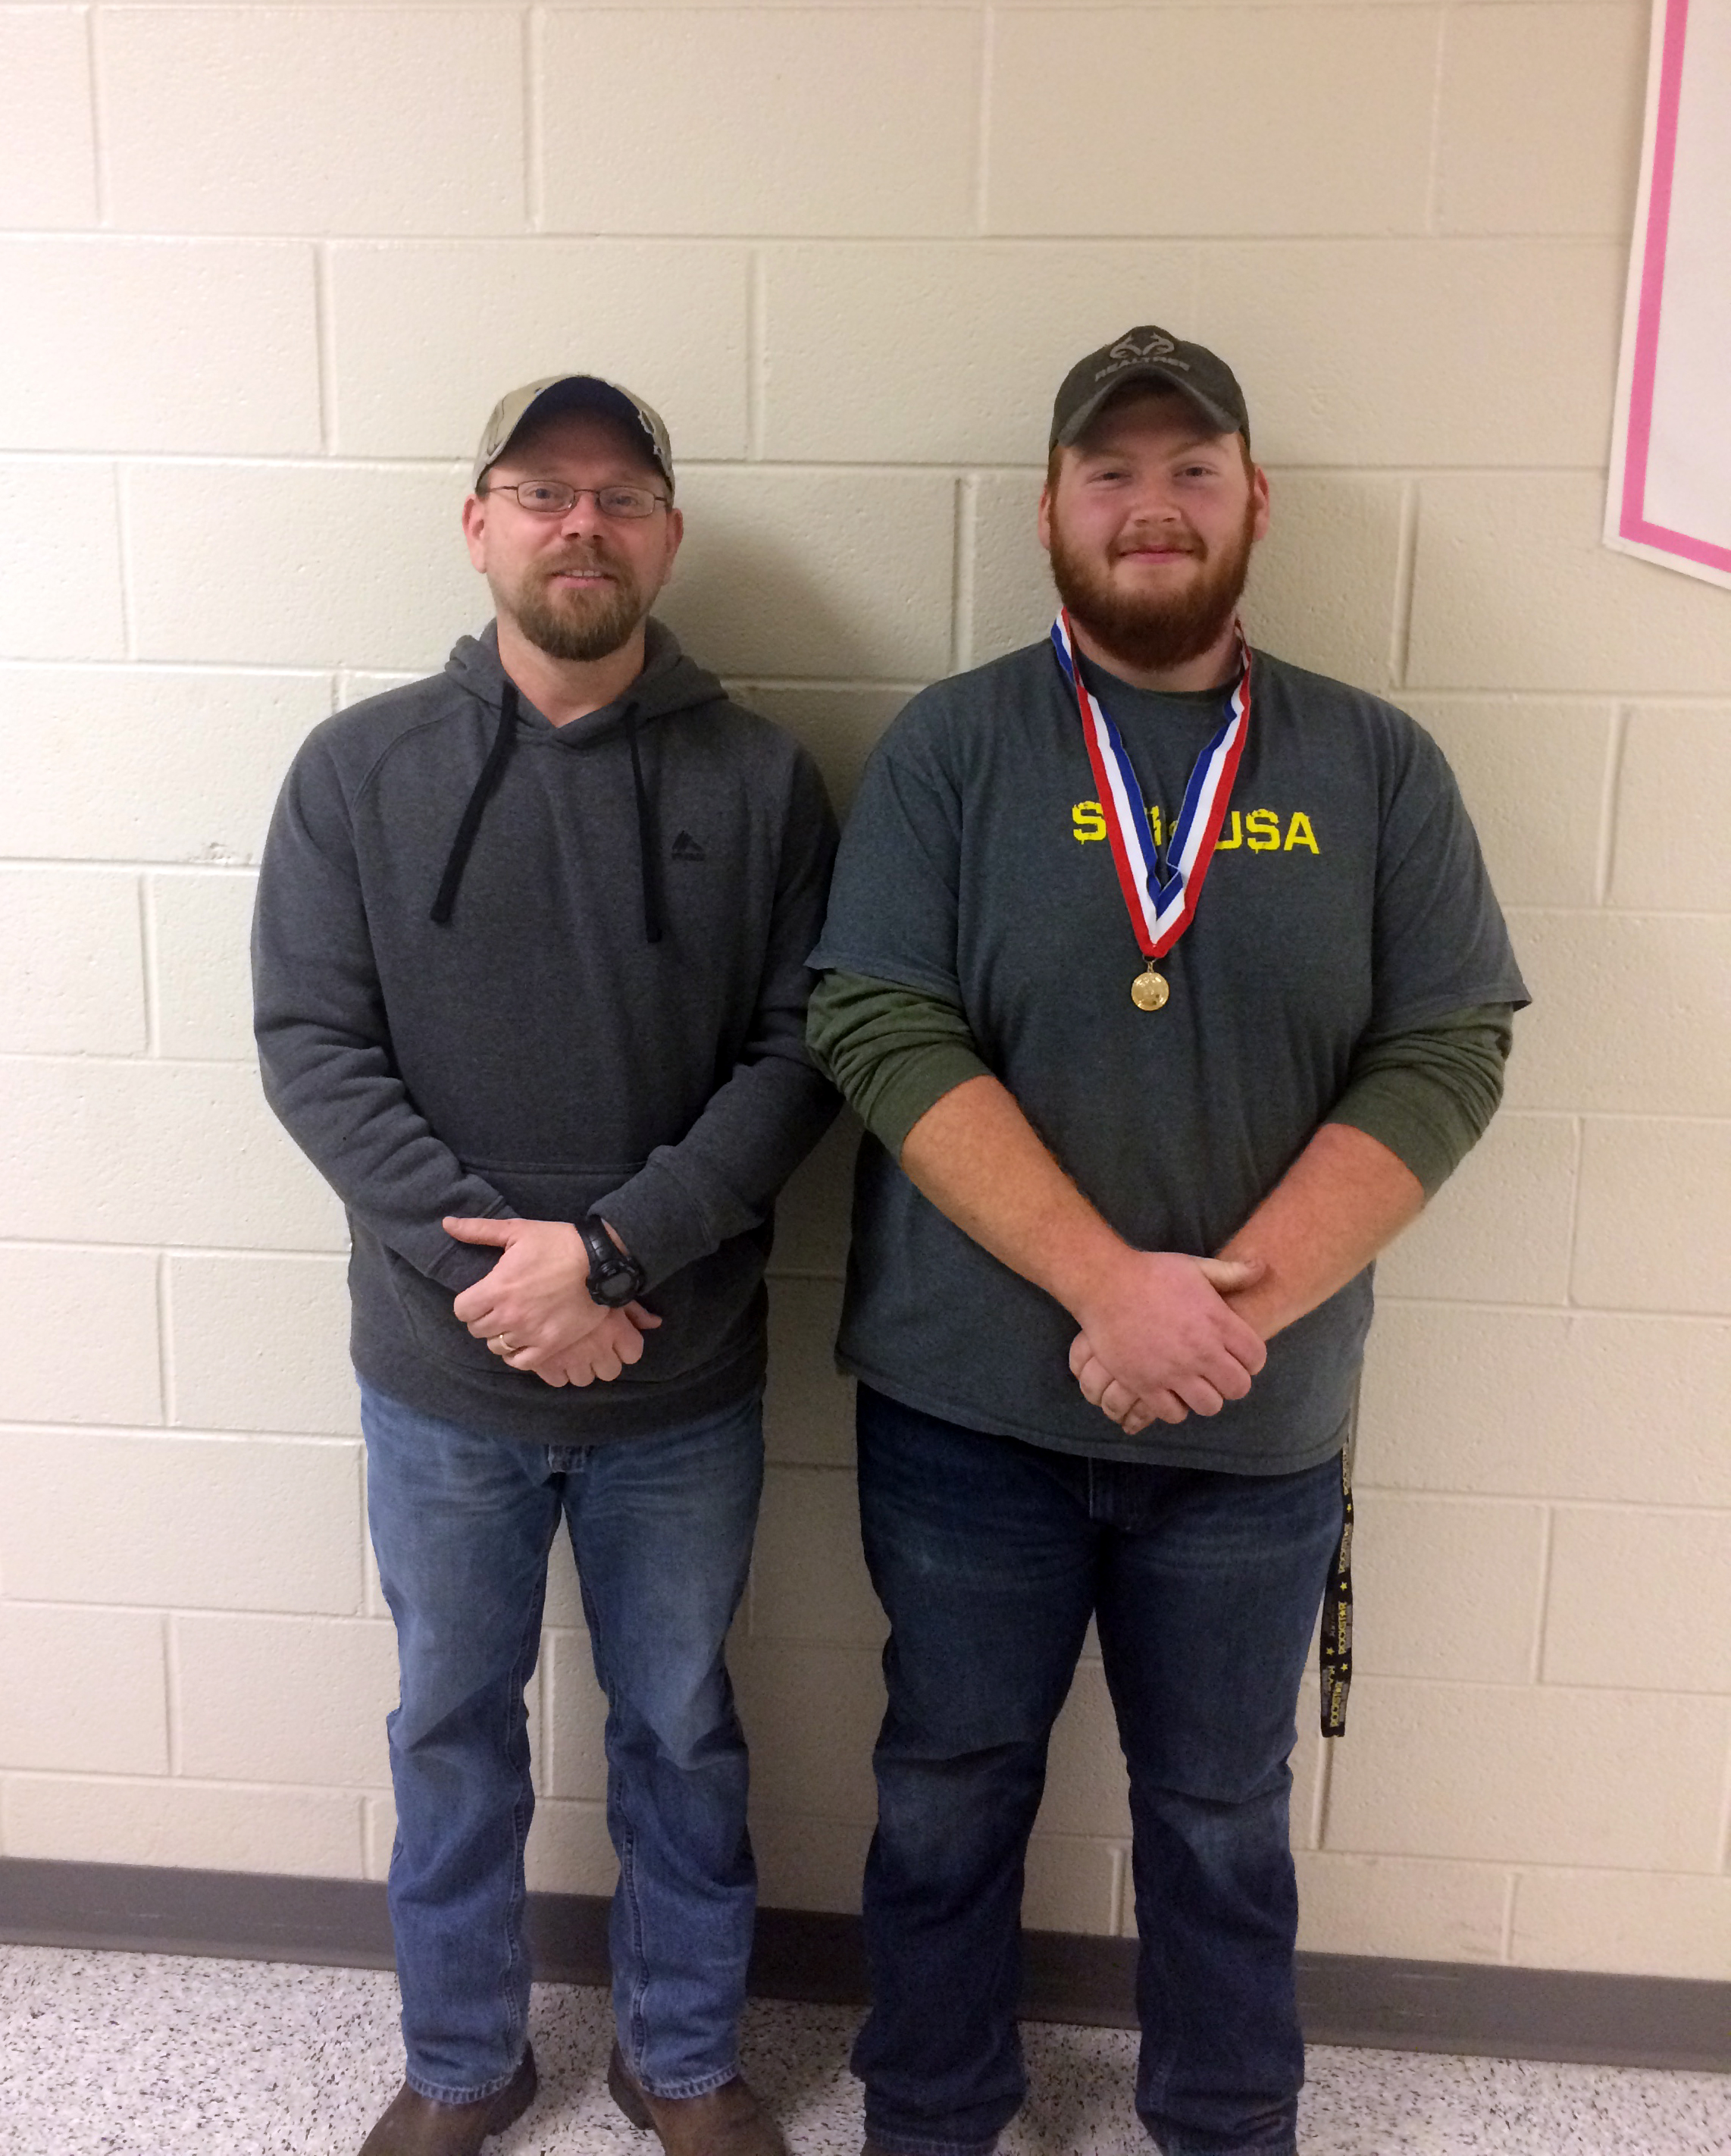 On February 17th, CCATC student Billy Abbott won first place at the Skills USA competition in Tool Identification for the automotive program.